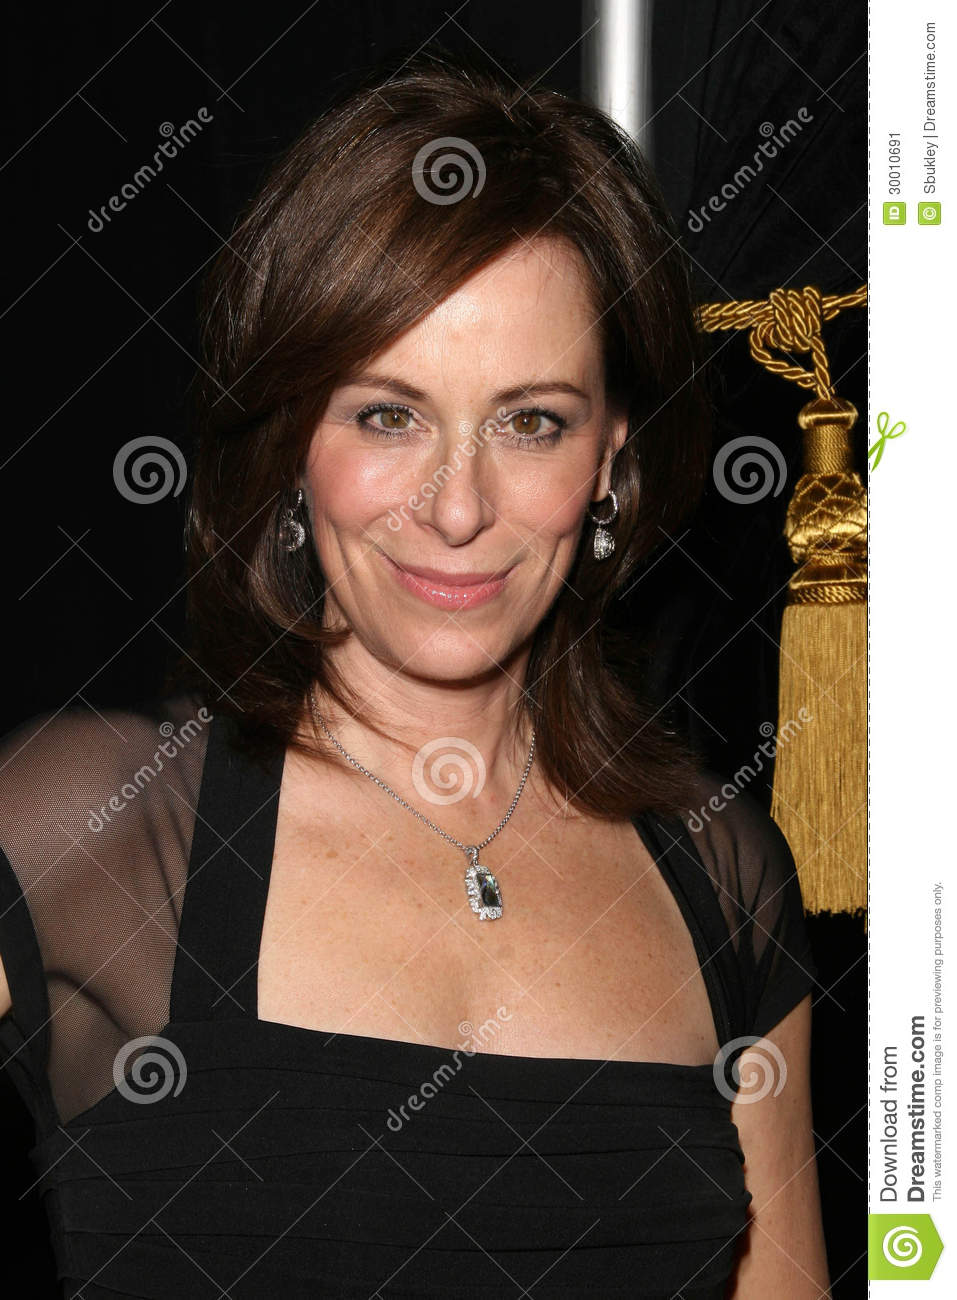 jane kaczmarek 2015jane kaczmarek breaking bad, jane kaczmarek on bryan cranston, jane kaczmarek, jane kaczmarek 2015, jane kaczmarek twitter, jane kaczmarek young, jane kaczmarek the middle, jane kaczmarek instagram, jane kaczmarek bradley whitford, jane kaczmarek net worth, jane kaczmarek big bang theory, jane kaczmarek murio